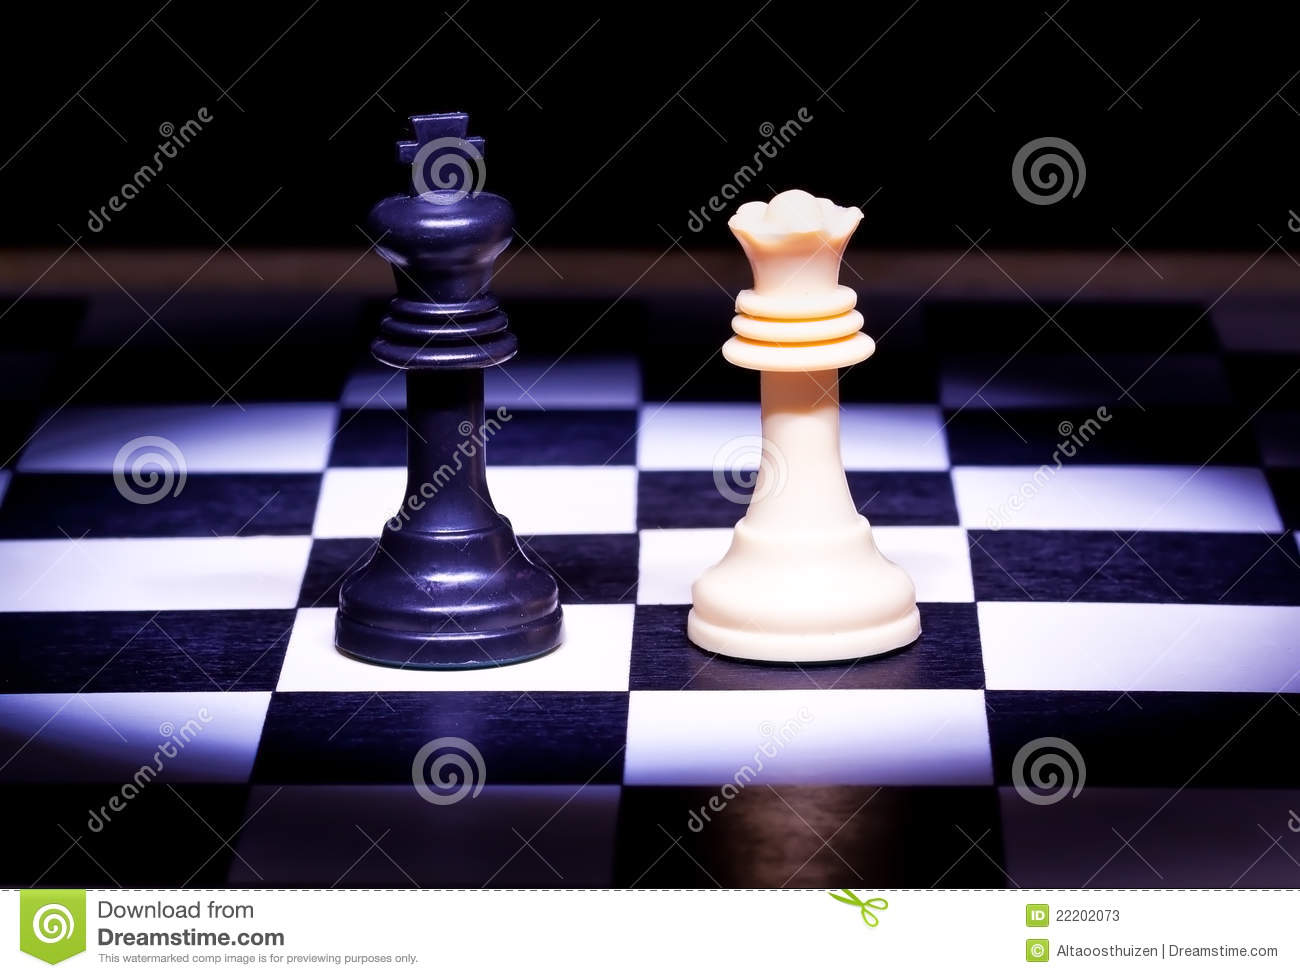 King And Queen Pieces Of Chess Game Stock Image - Image ...